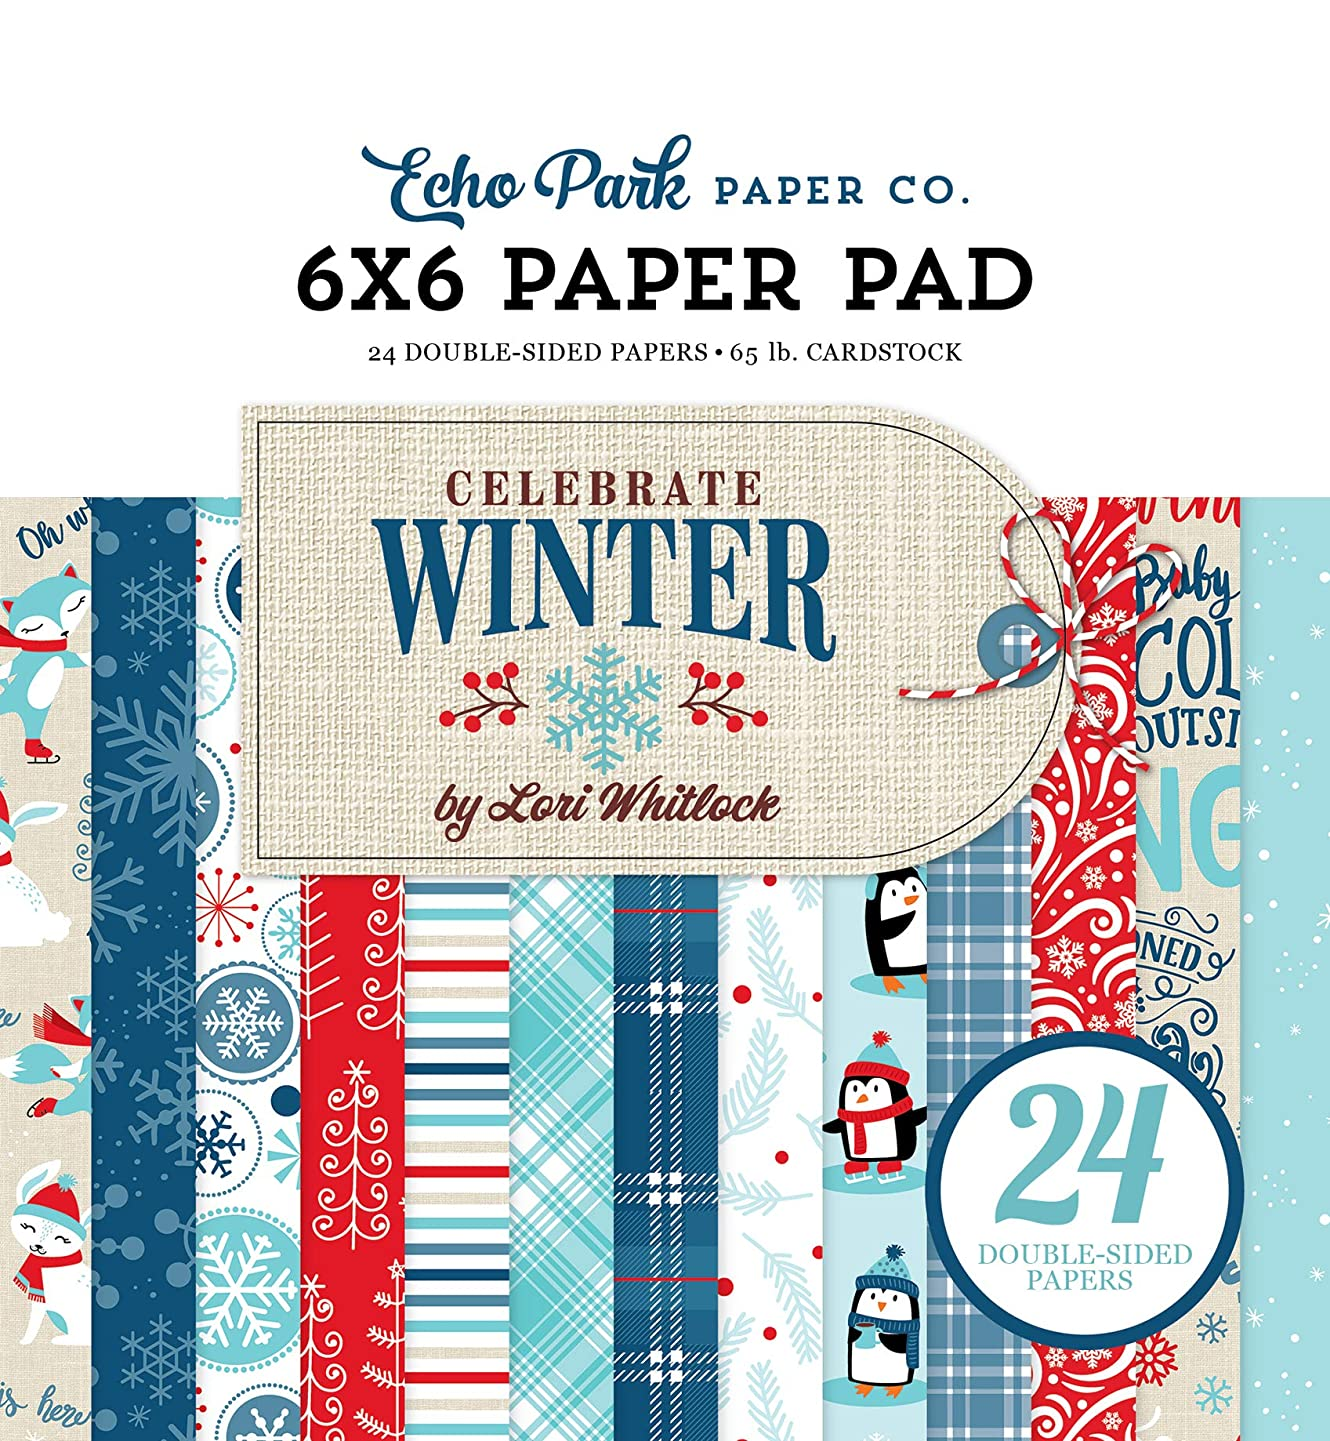 Echo Park Paper Company CW162023 Celebrate Winter 6x6 Pad Paper, red, Blue, Navy, Green, White